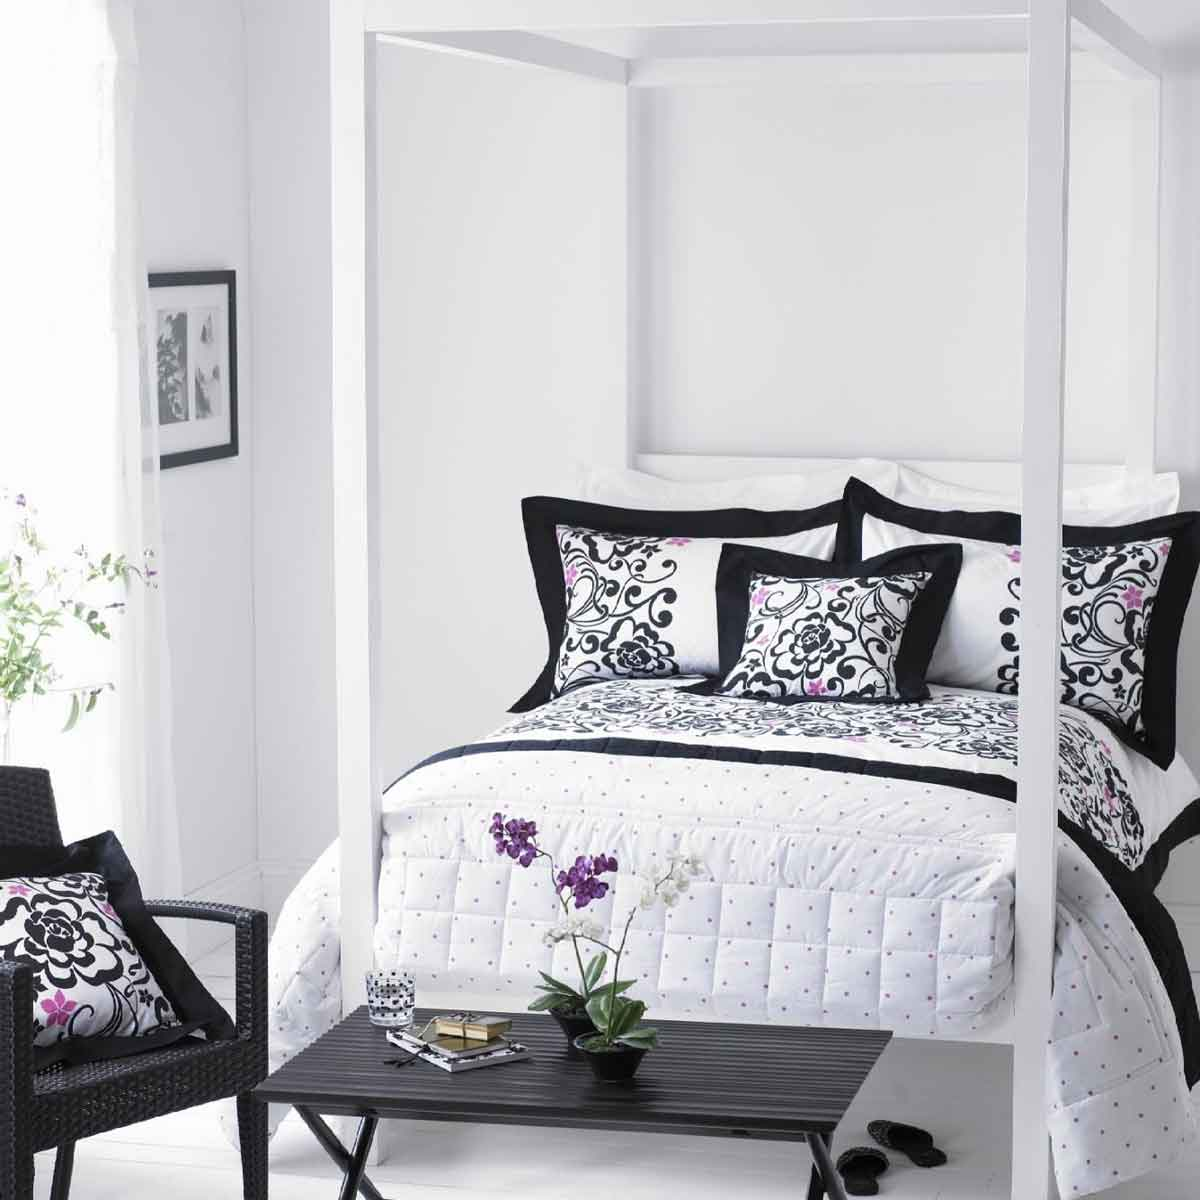 Black and white bedrooms designs home design inside for Bedroom designs white